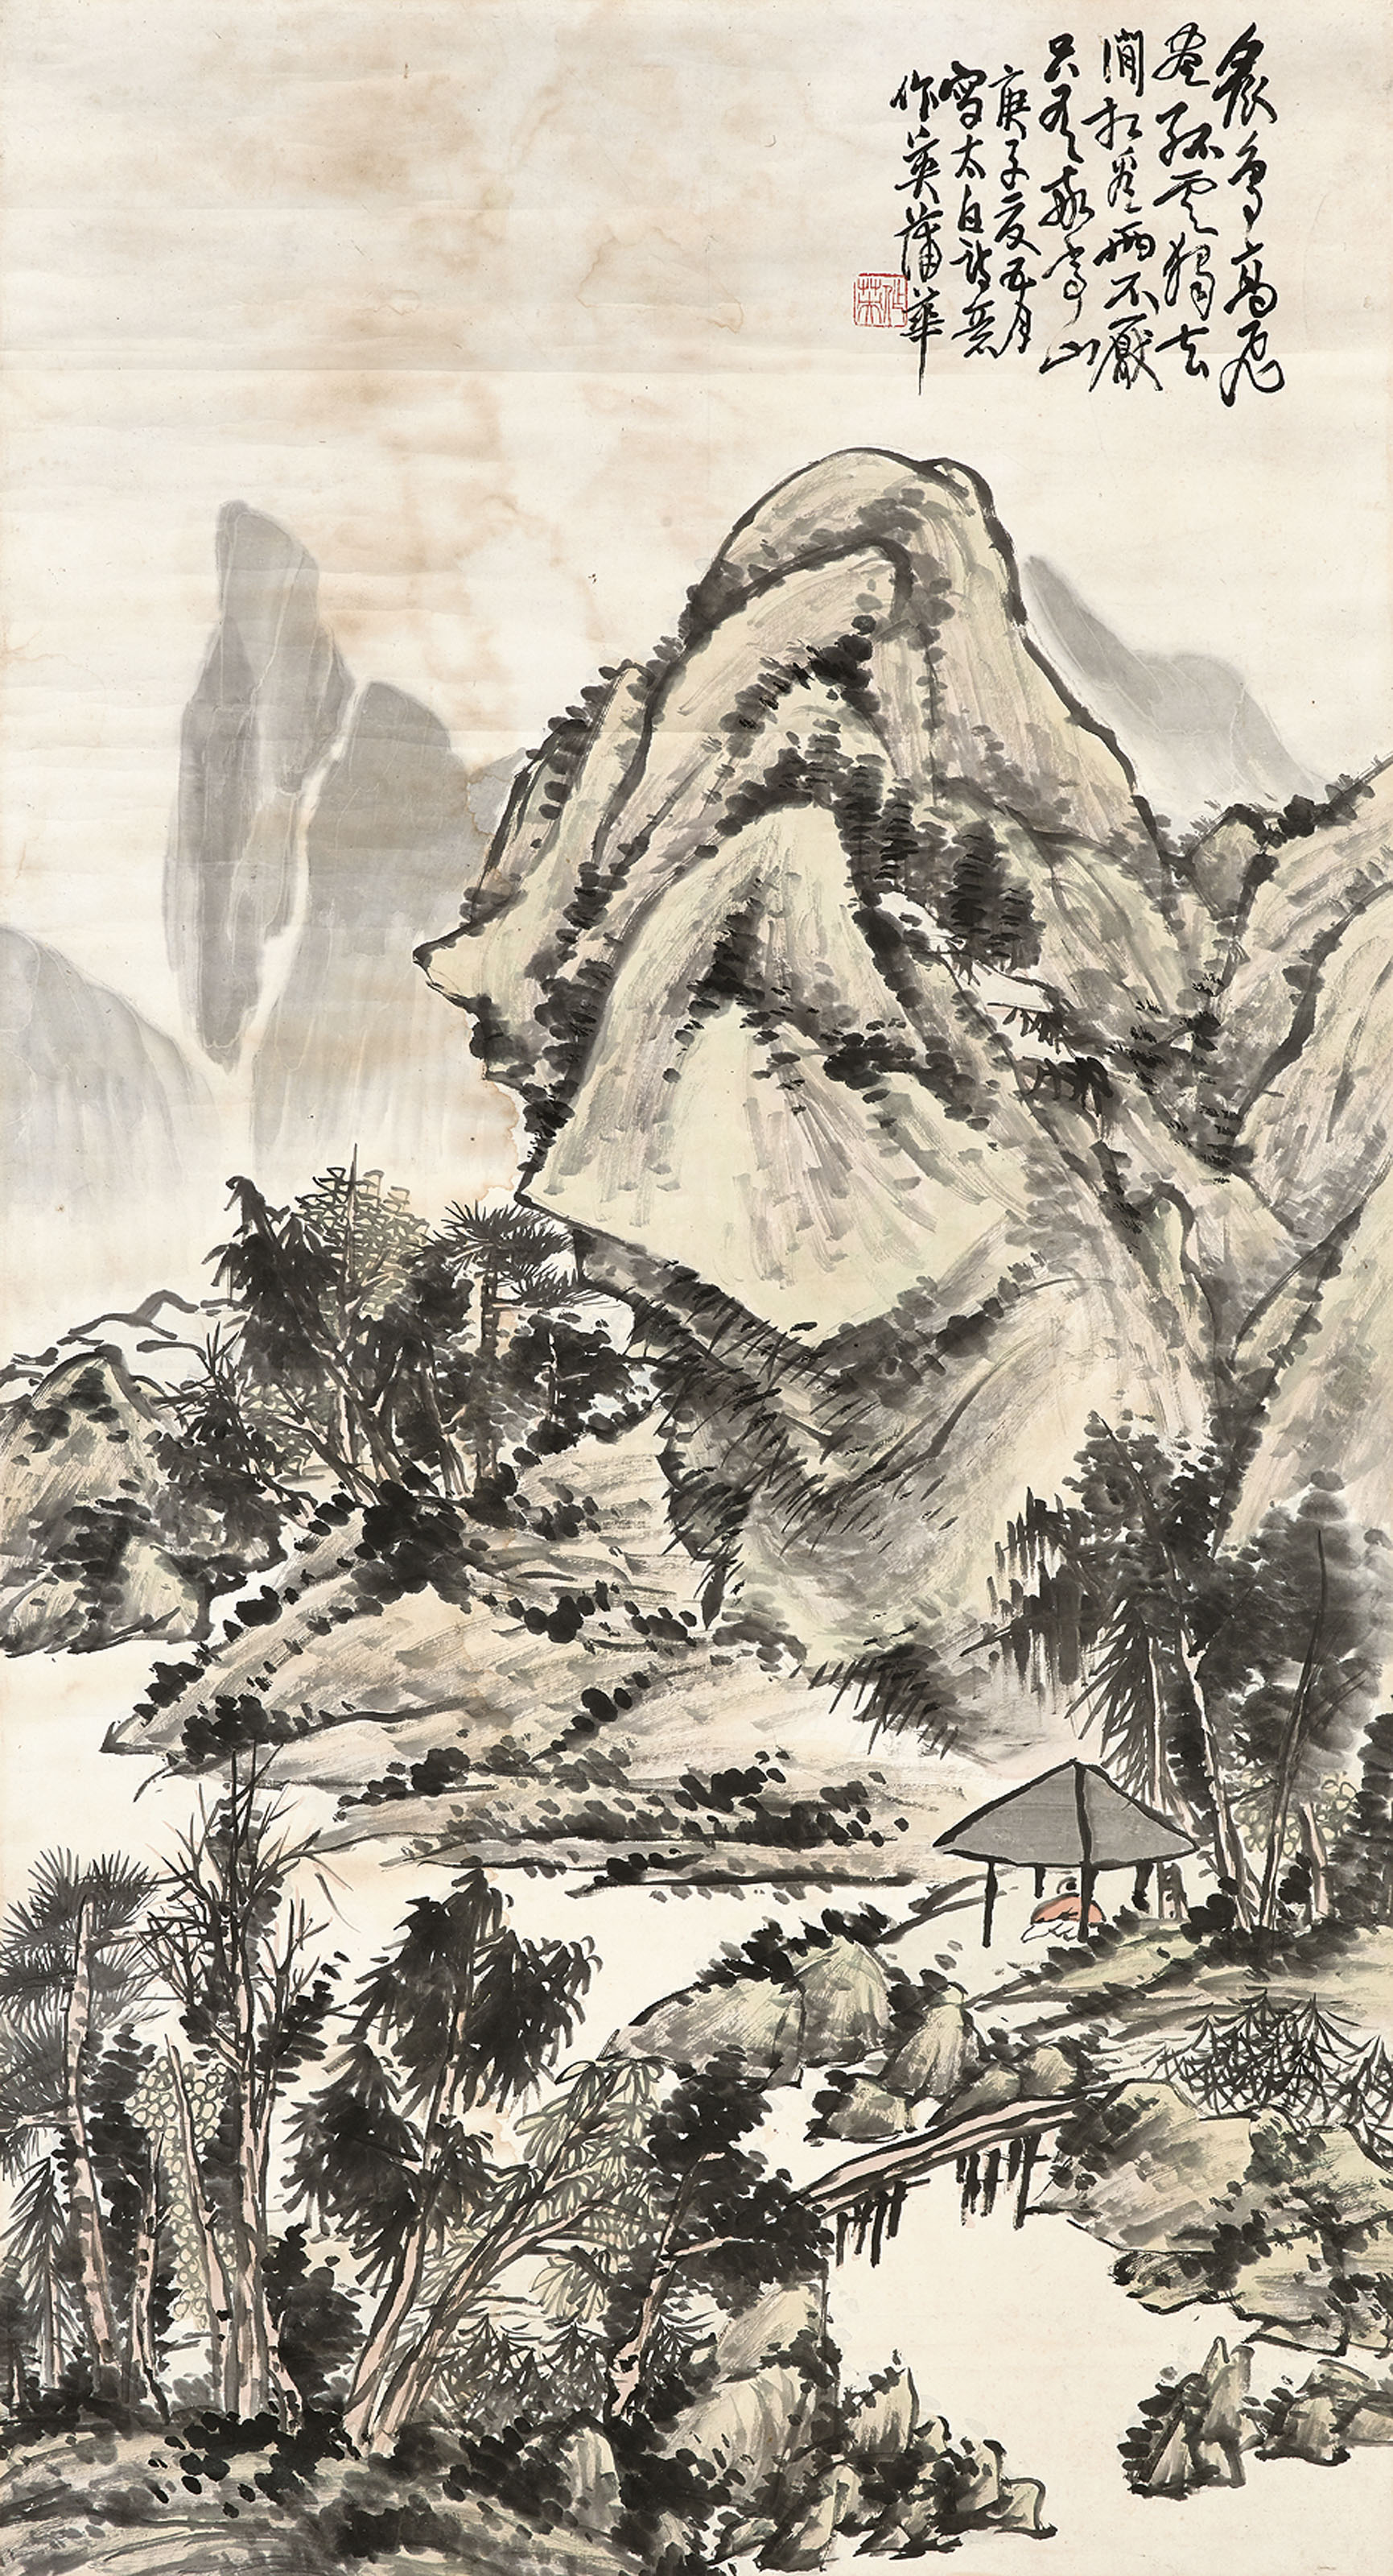 Landscape in the Sentiments of Li Bai